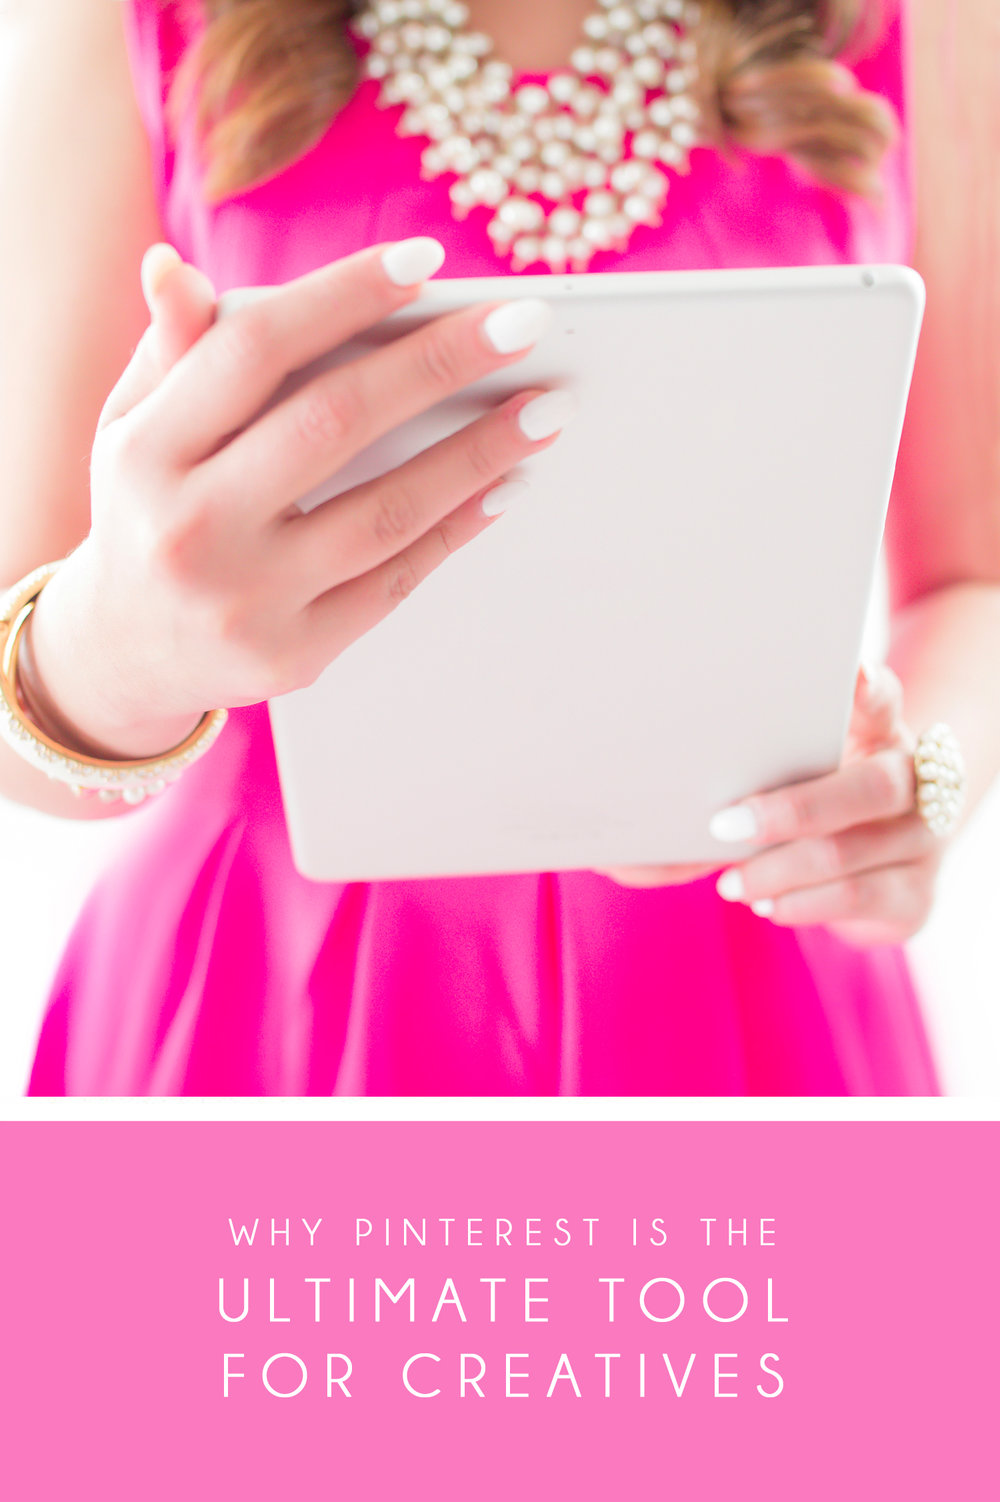 Why Pinterest is the Ultimate Tool for Creatives | Aceti Design Co.